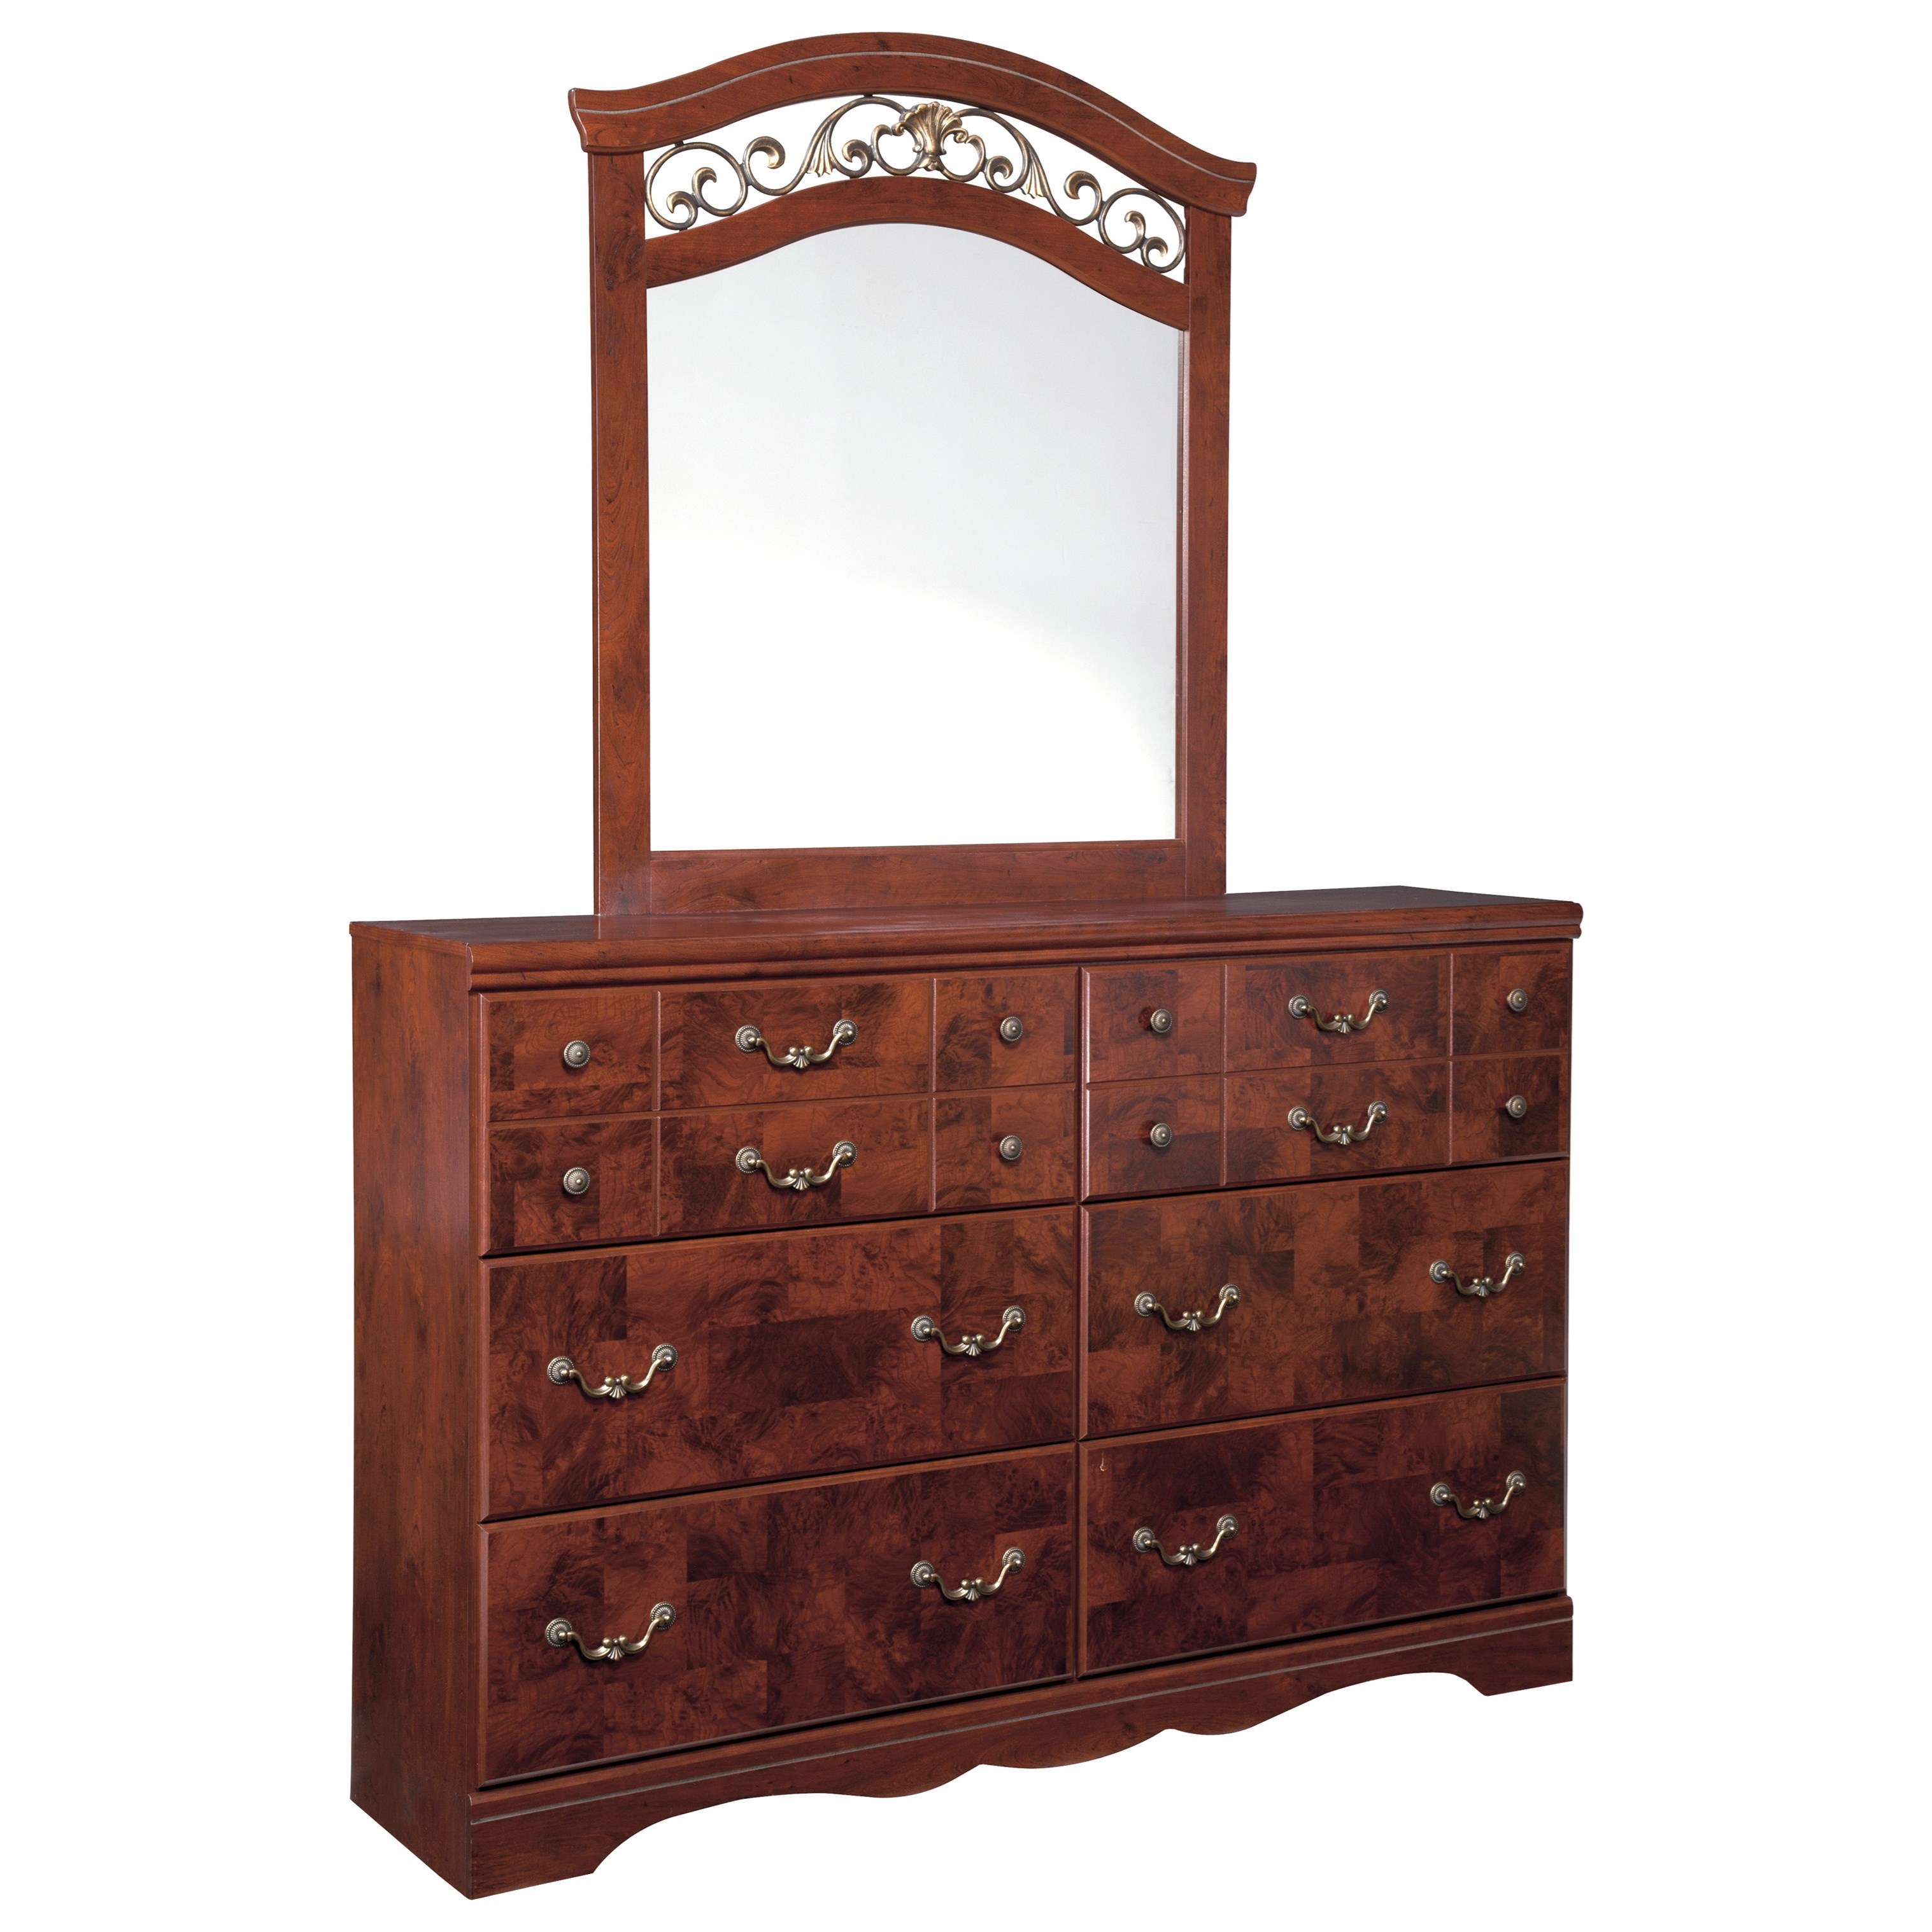 Signature Design by Ashley Delianna Dresser & Bedroom Mirror - Item Number: B223-31+36